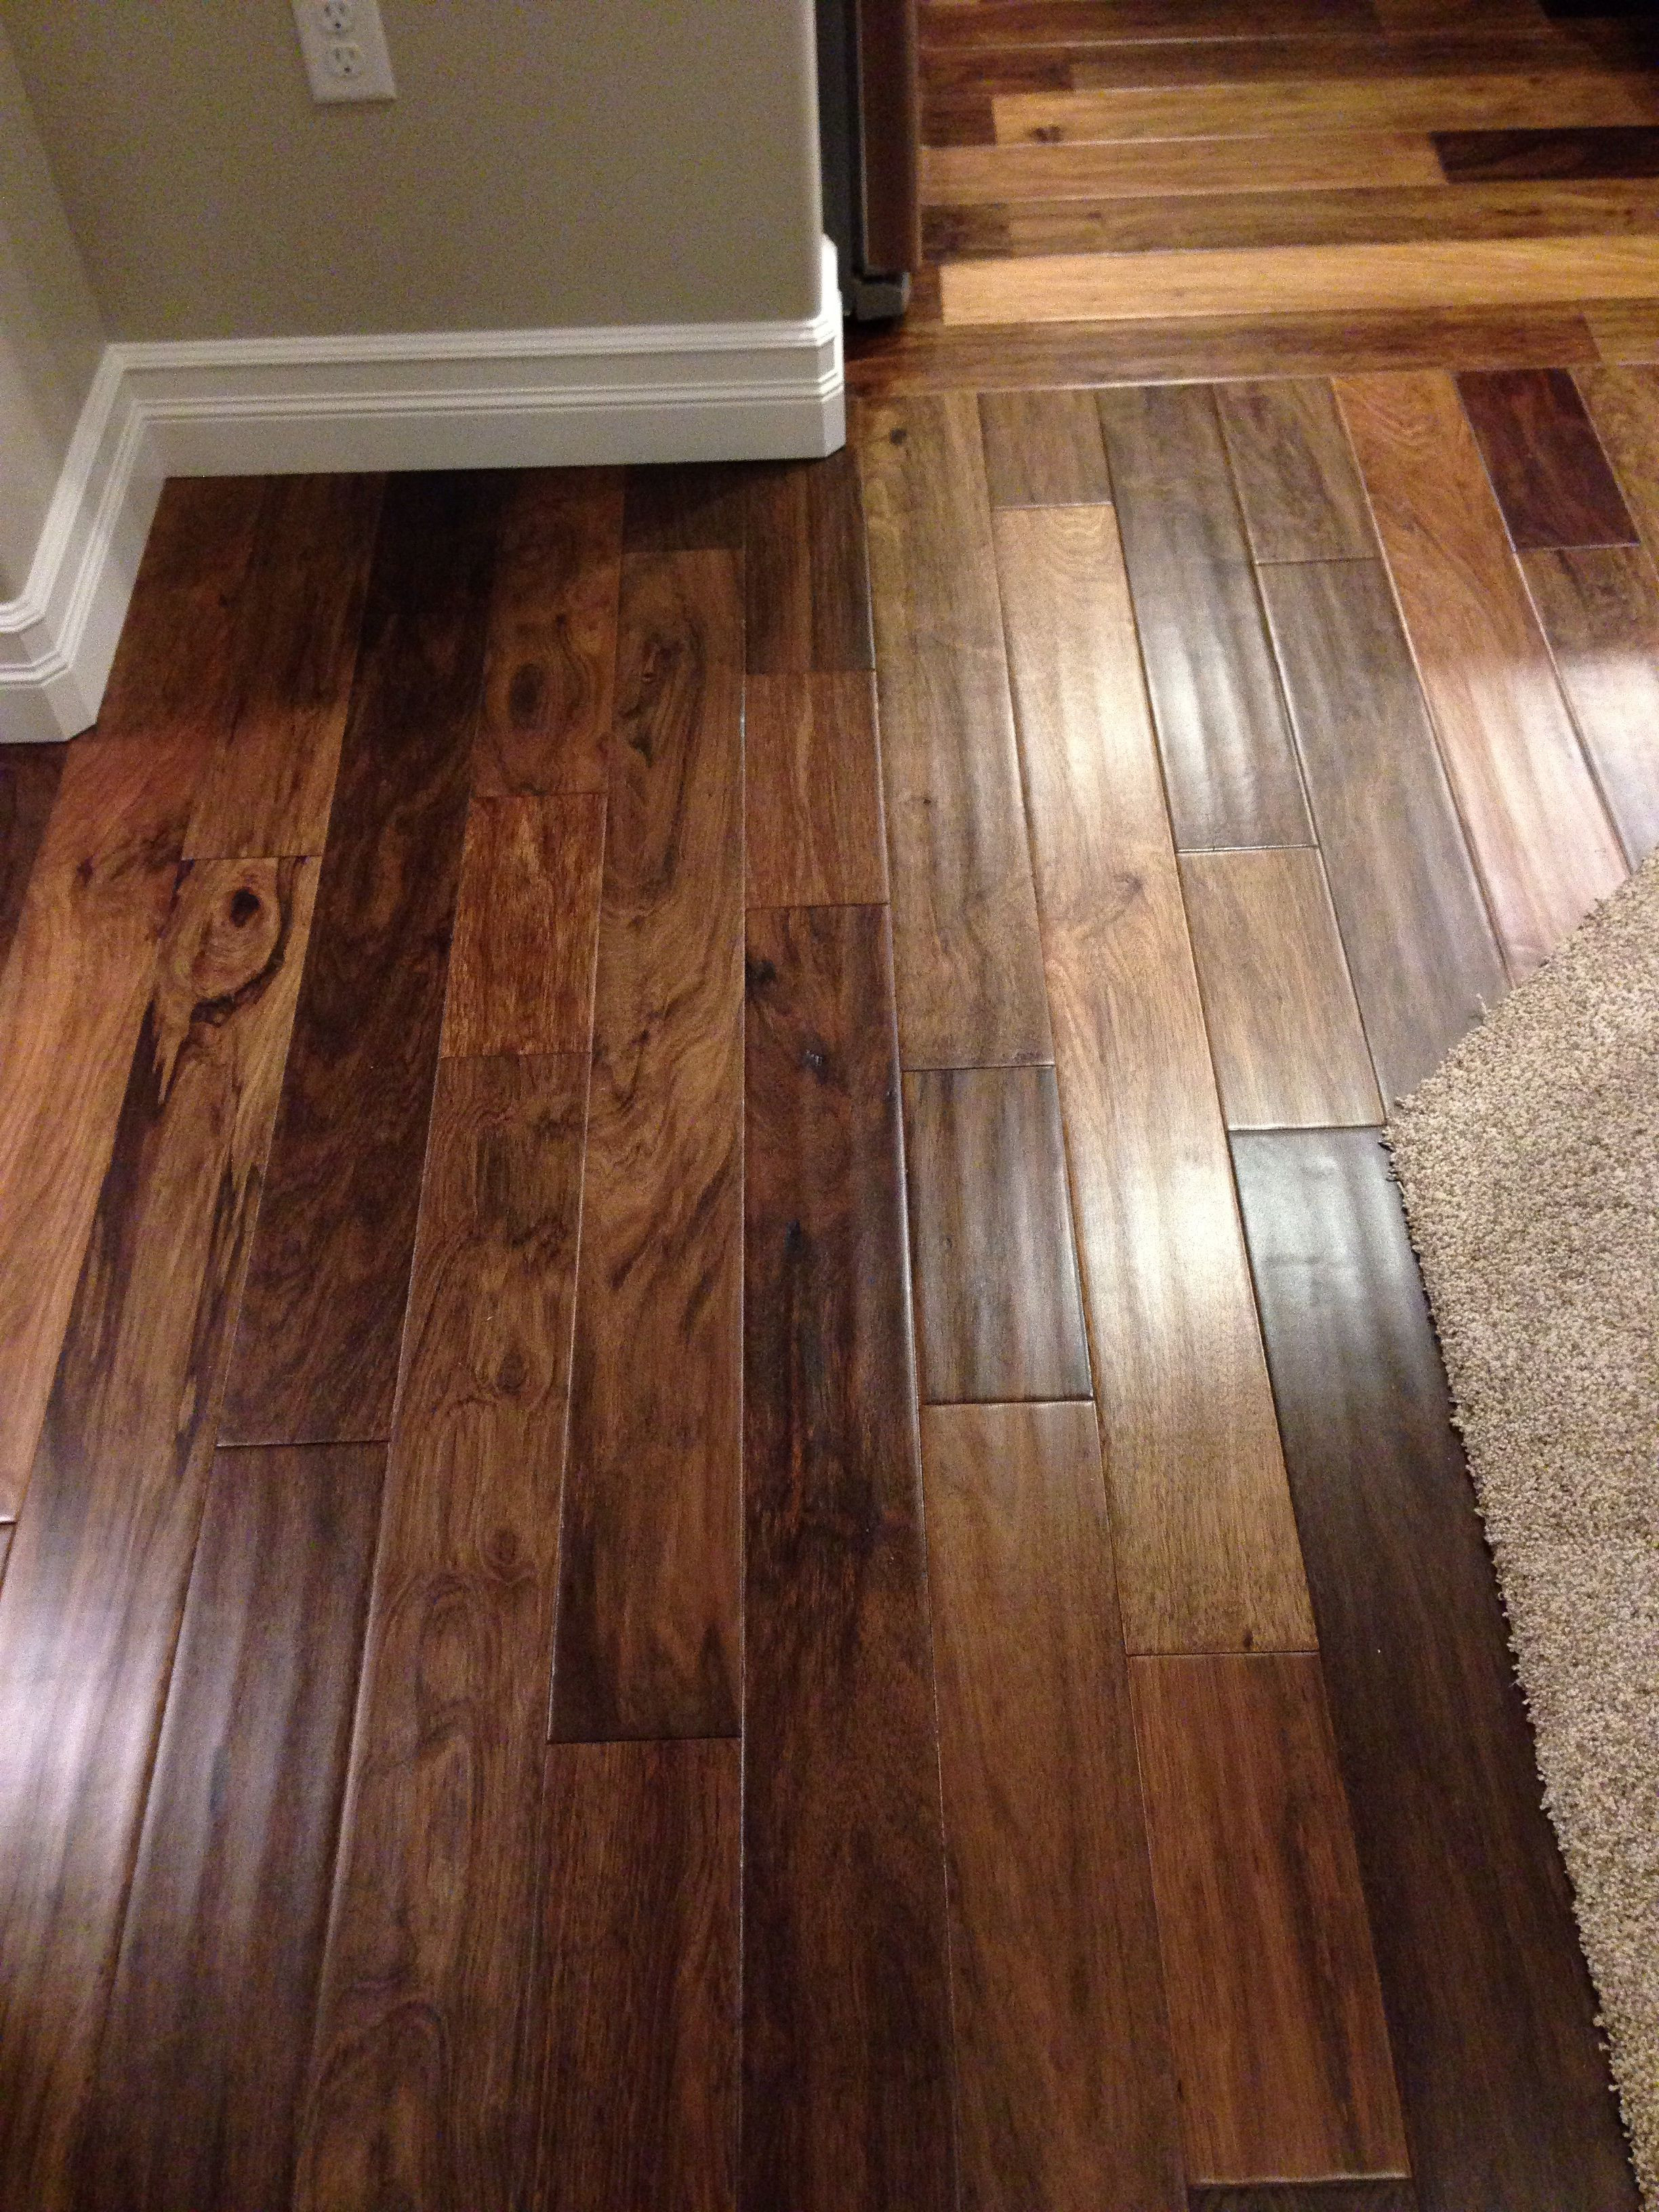 hardwood flooring prices south africa of african ebony engineered wood floor by mohawk 5 inch plank hand with regard to african ebony engineered wood floor by mohawk 5 inch plank hand scraped would